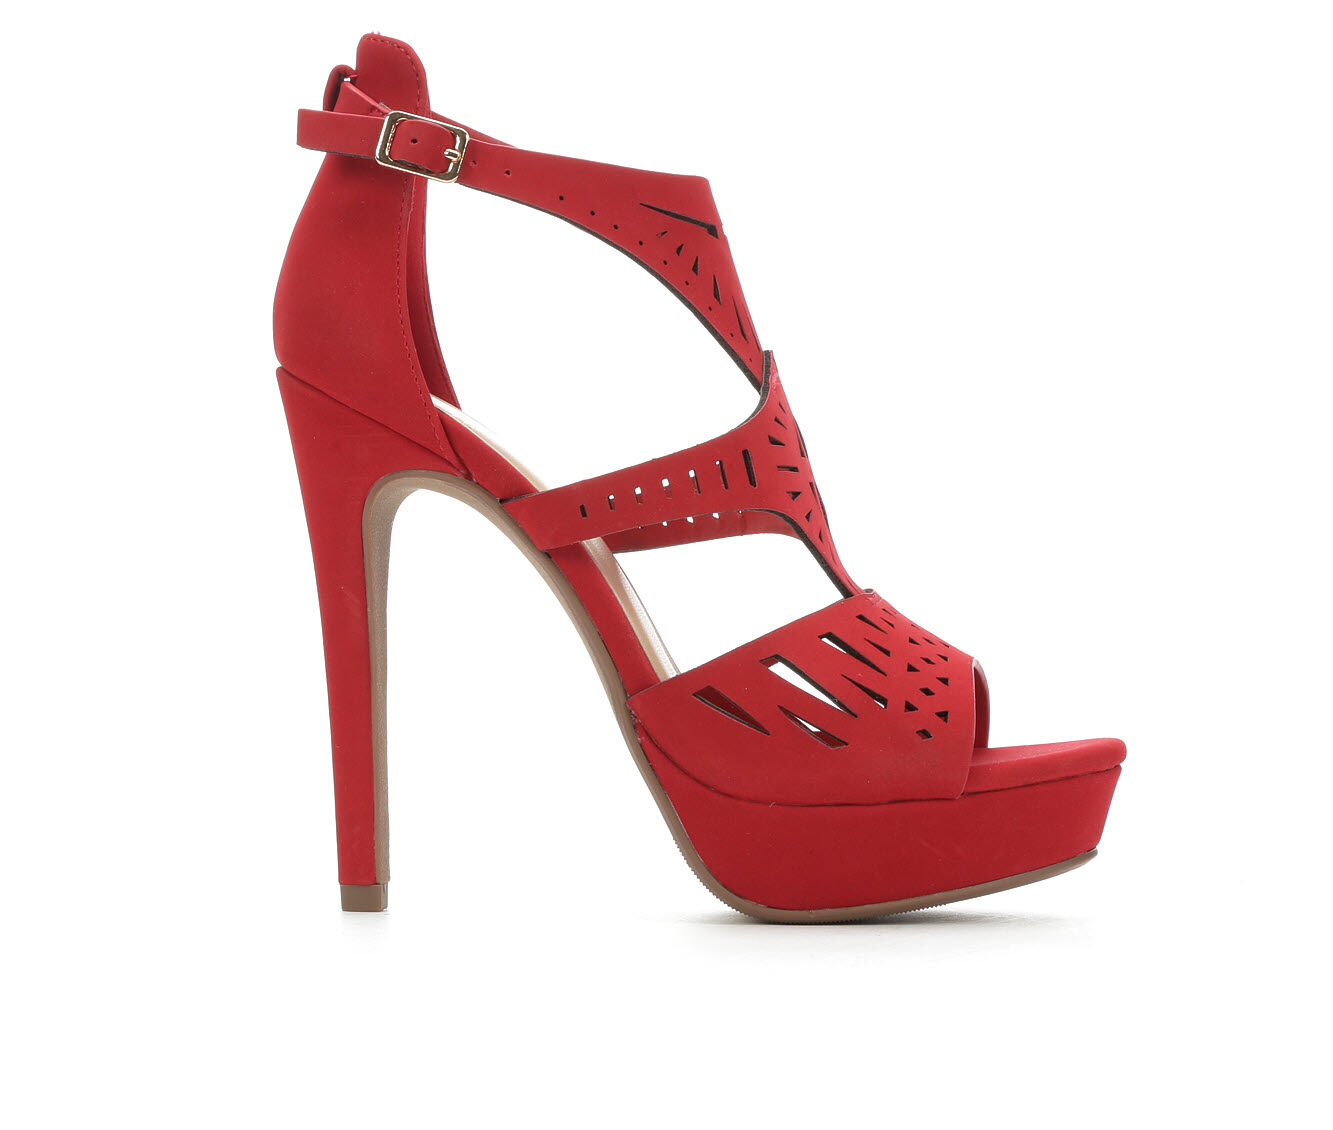 Women's Delicious Abagale Heeled Sandals Lipstick Jul PU